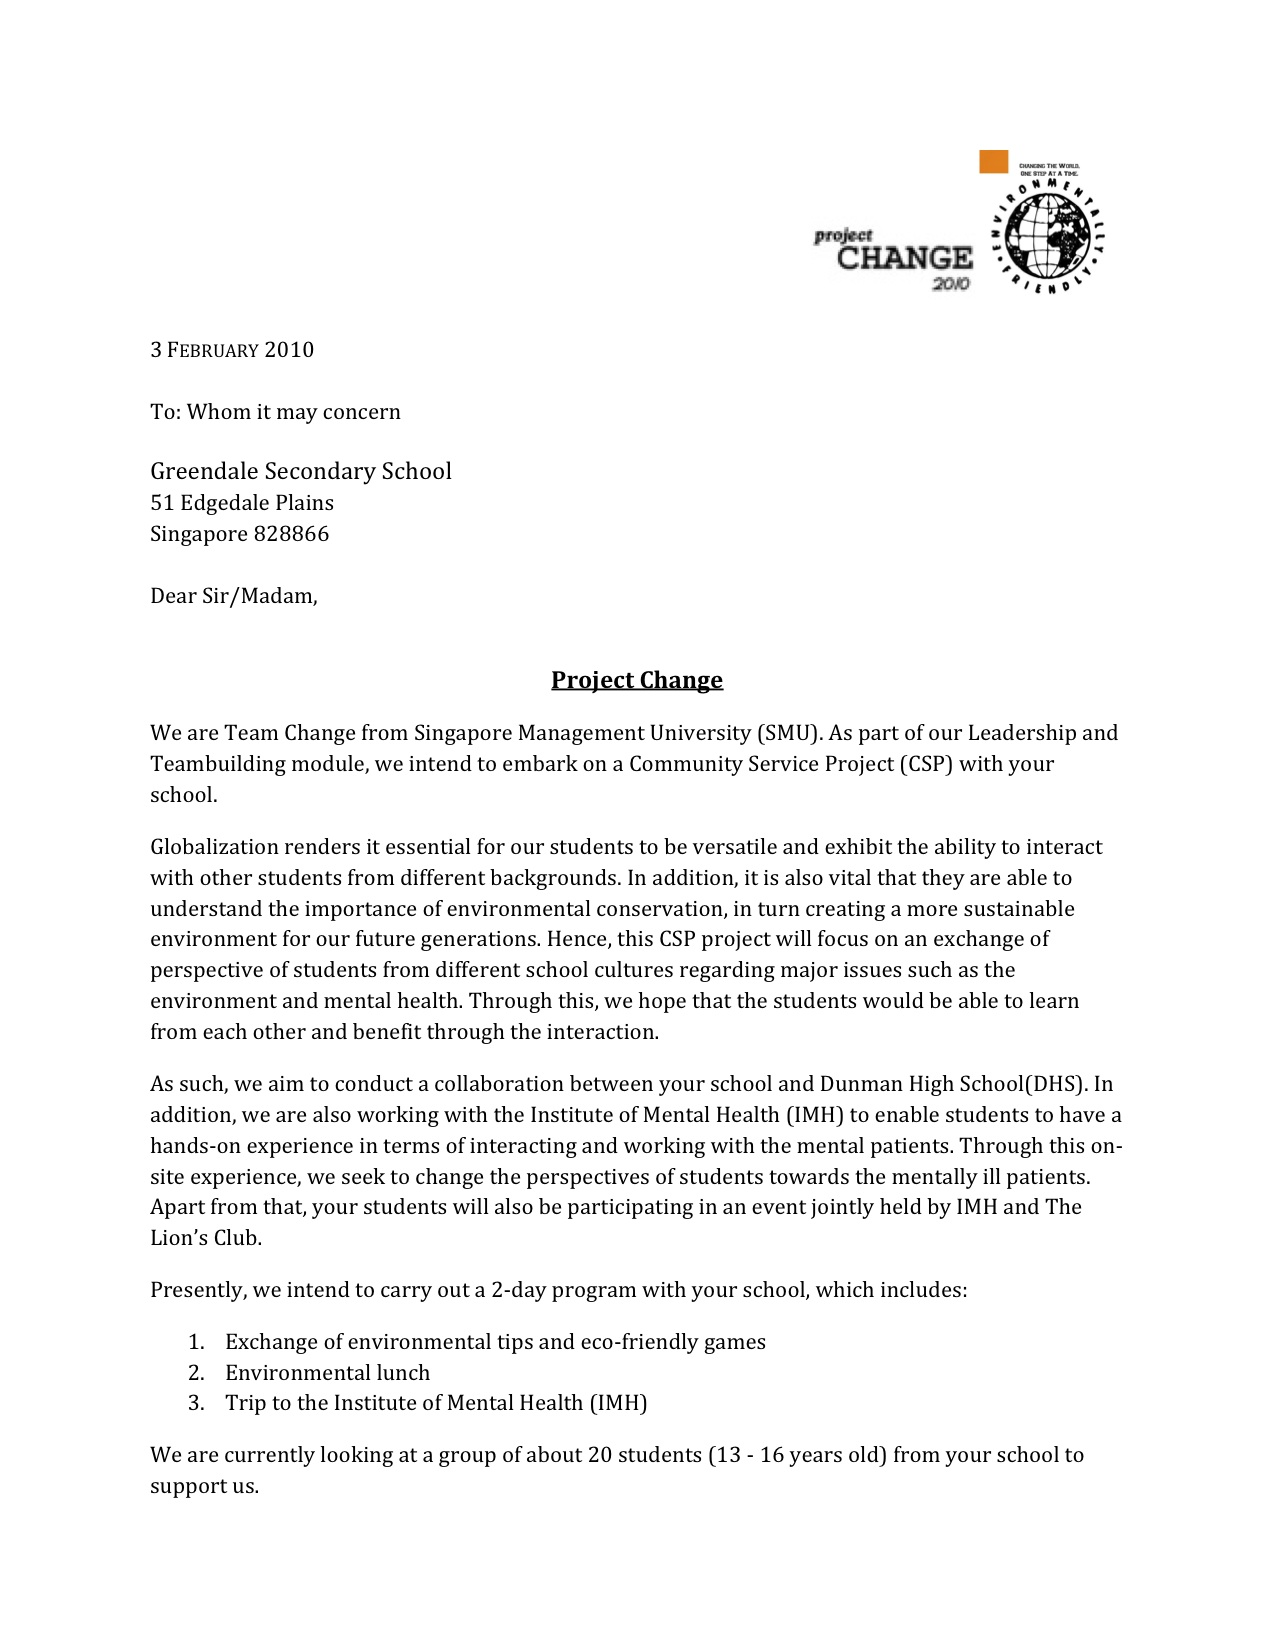 Job Letter Of Intent letter letter of intent word template – Free Letter of Intent